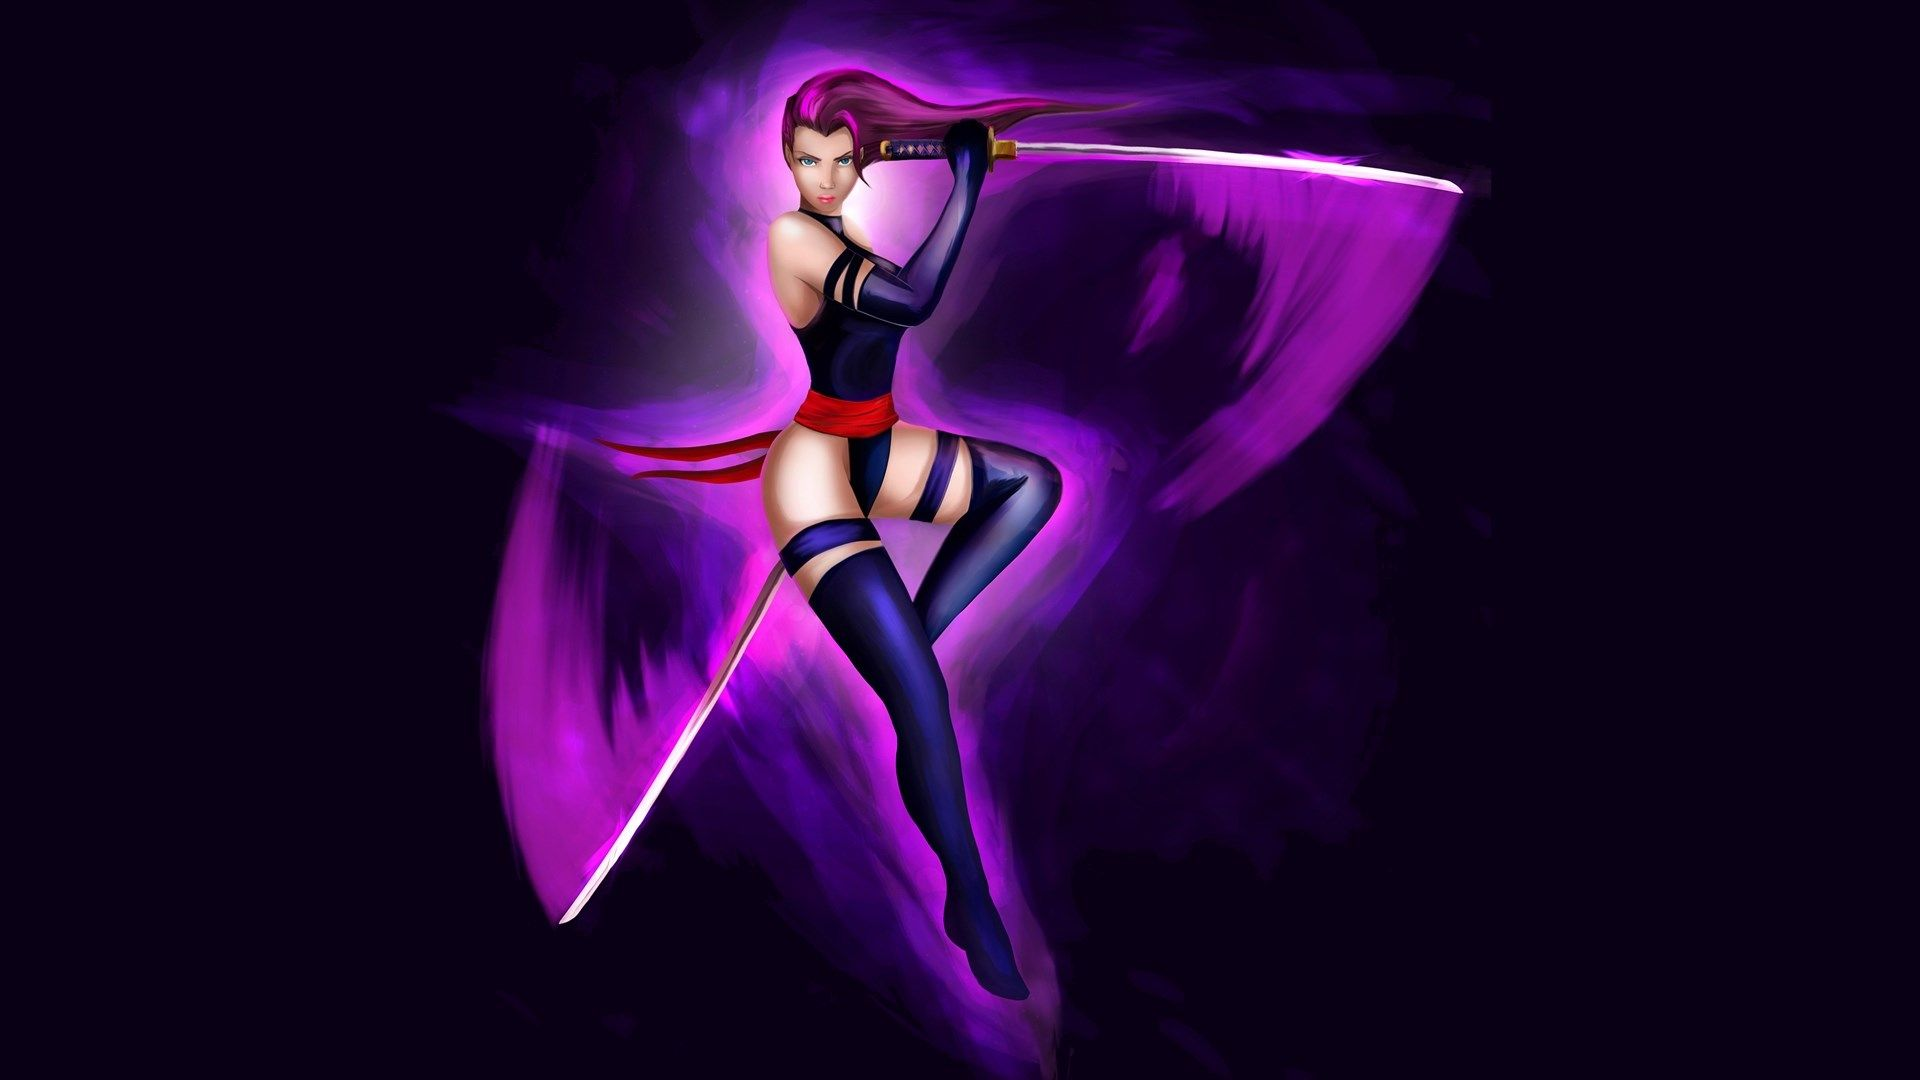 Psylocke Wallpapers For Mac Desktop Ballard Robin 1920x1080